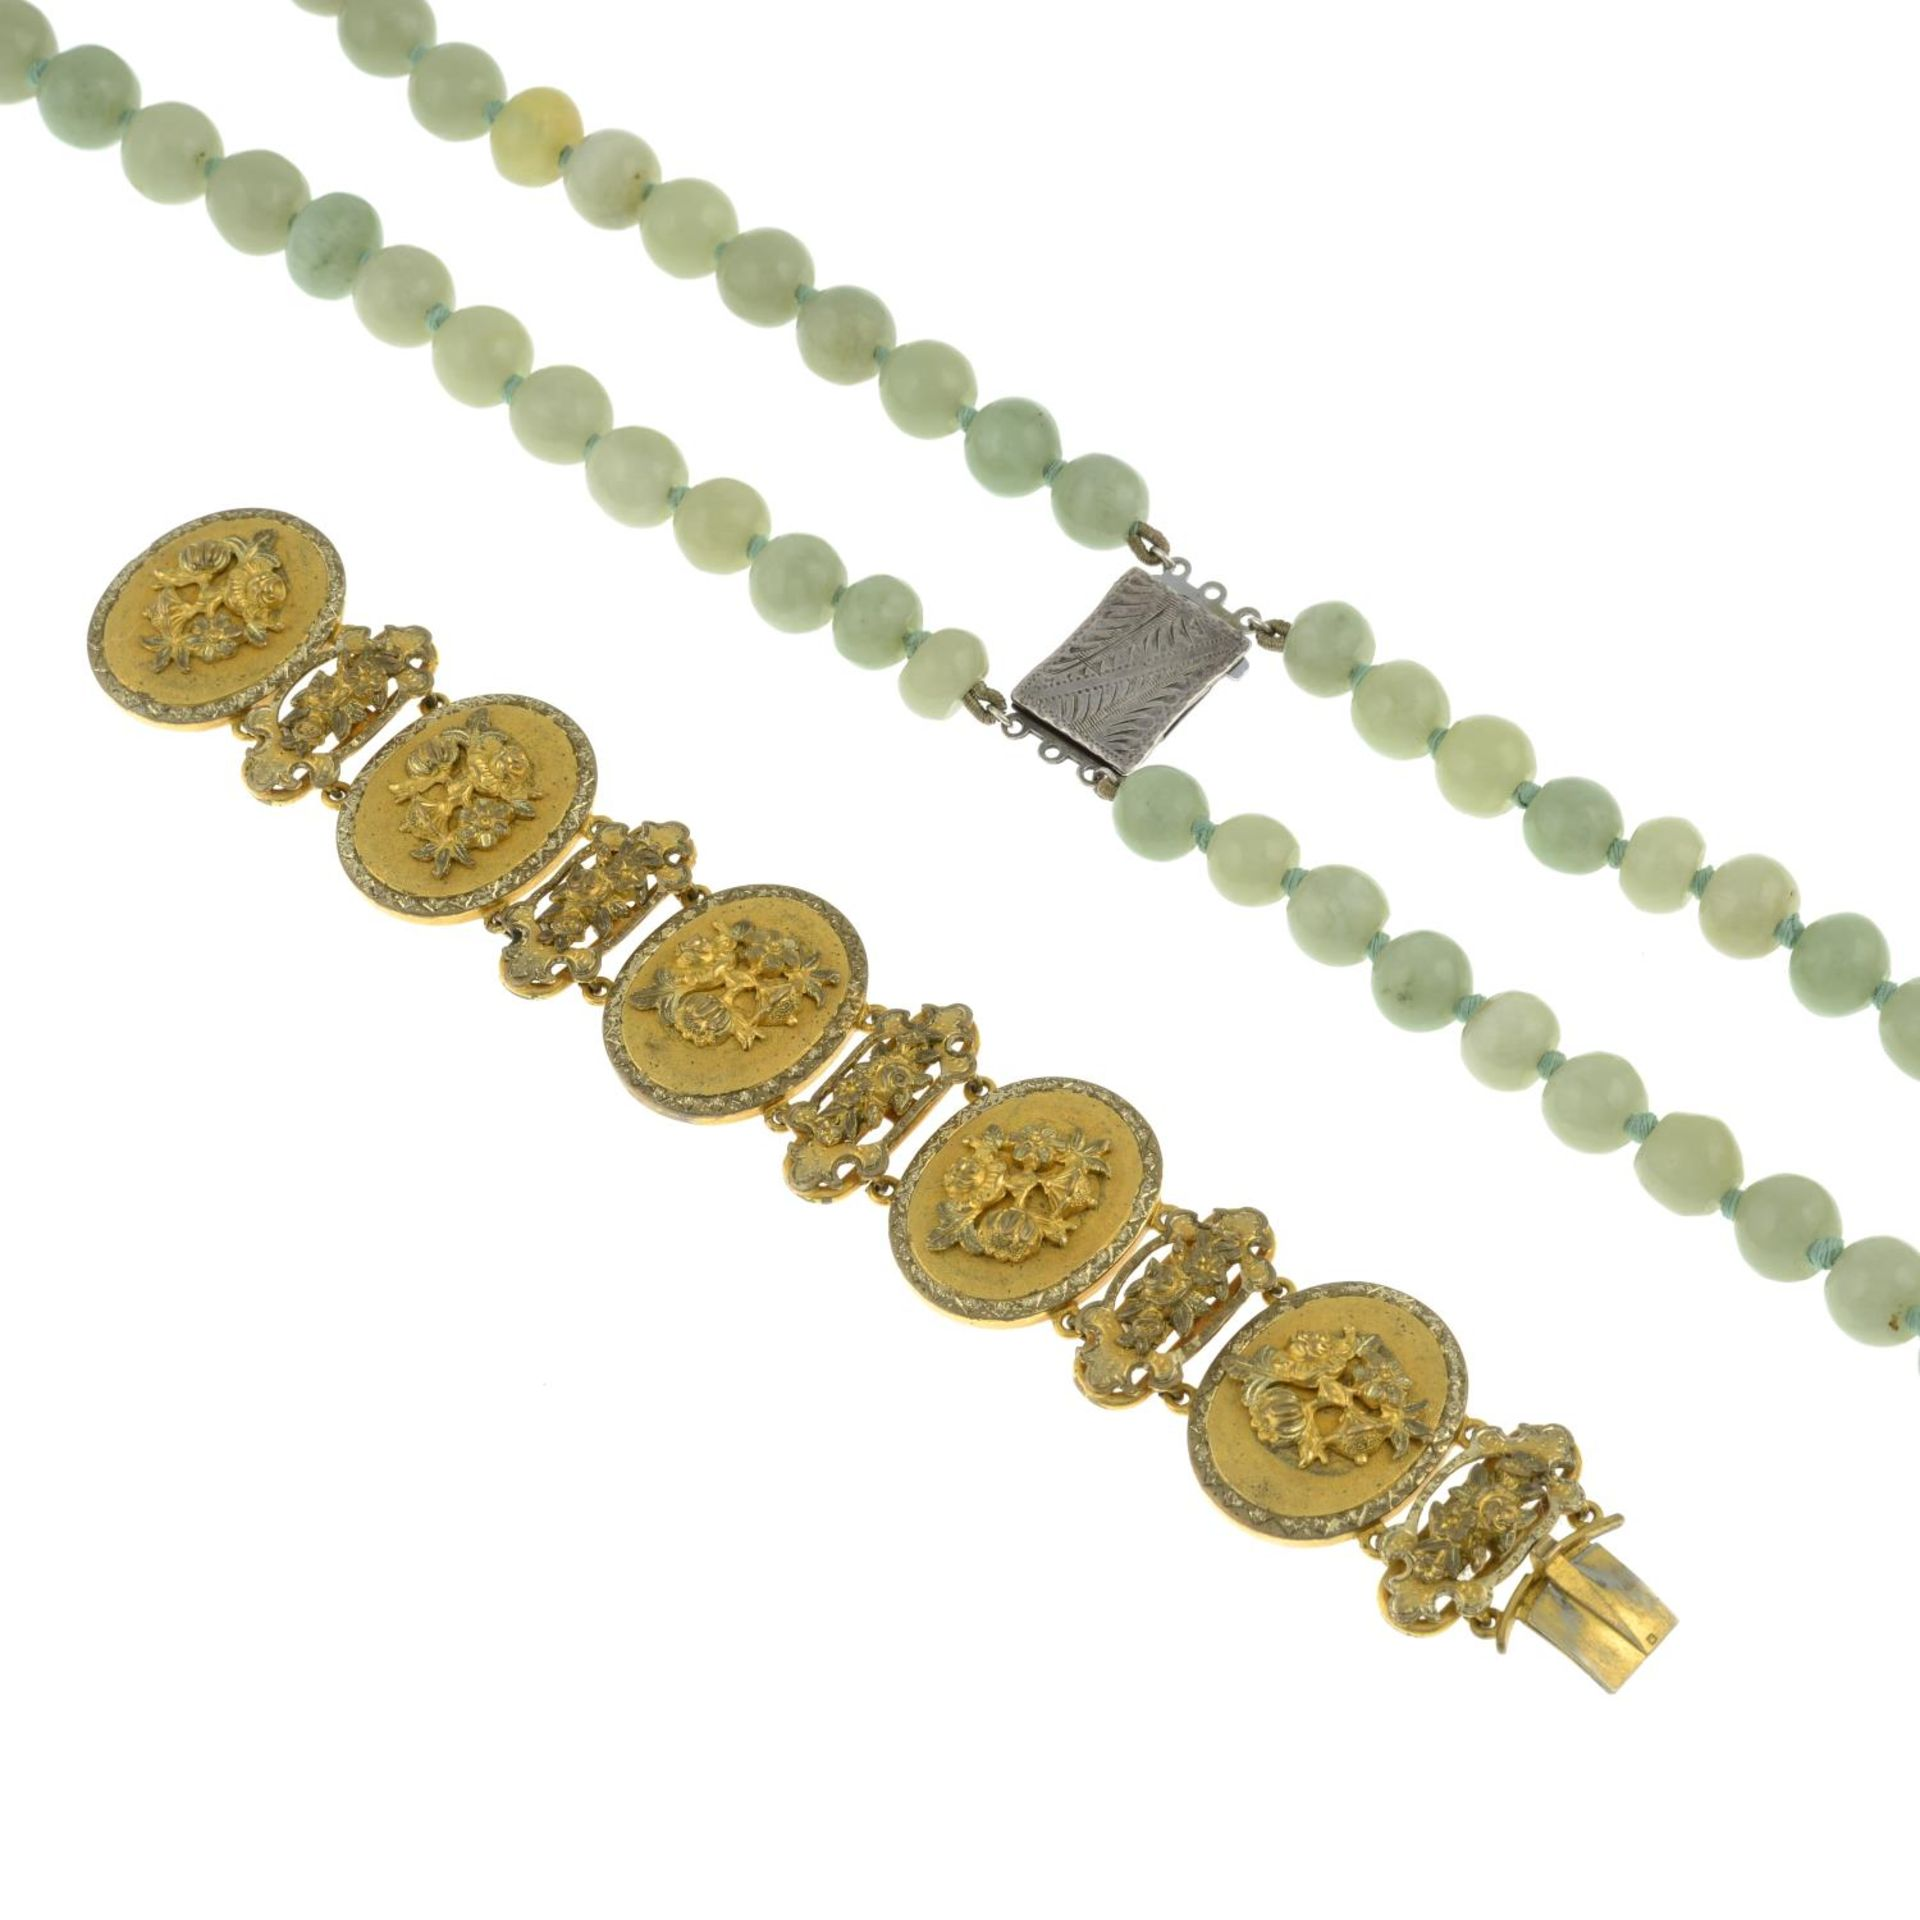 A two row jade necklace, - Image 3 of 3